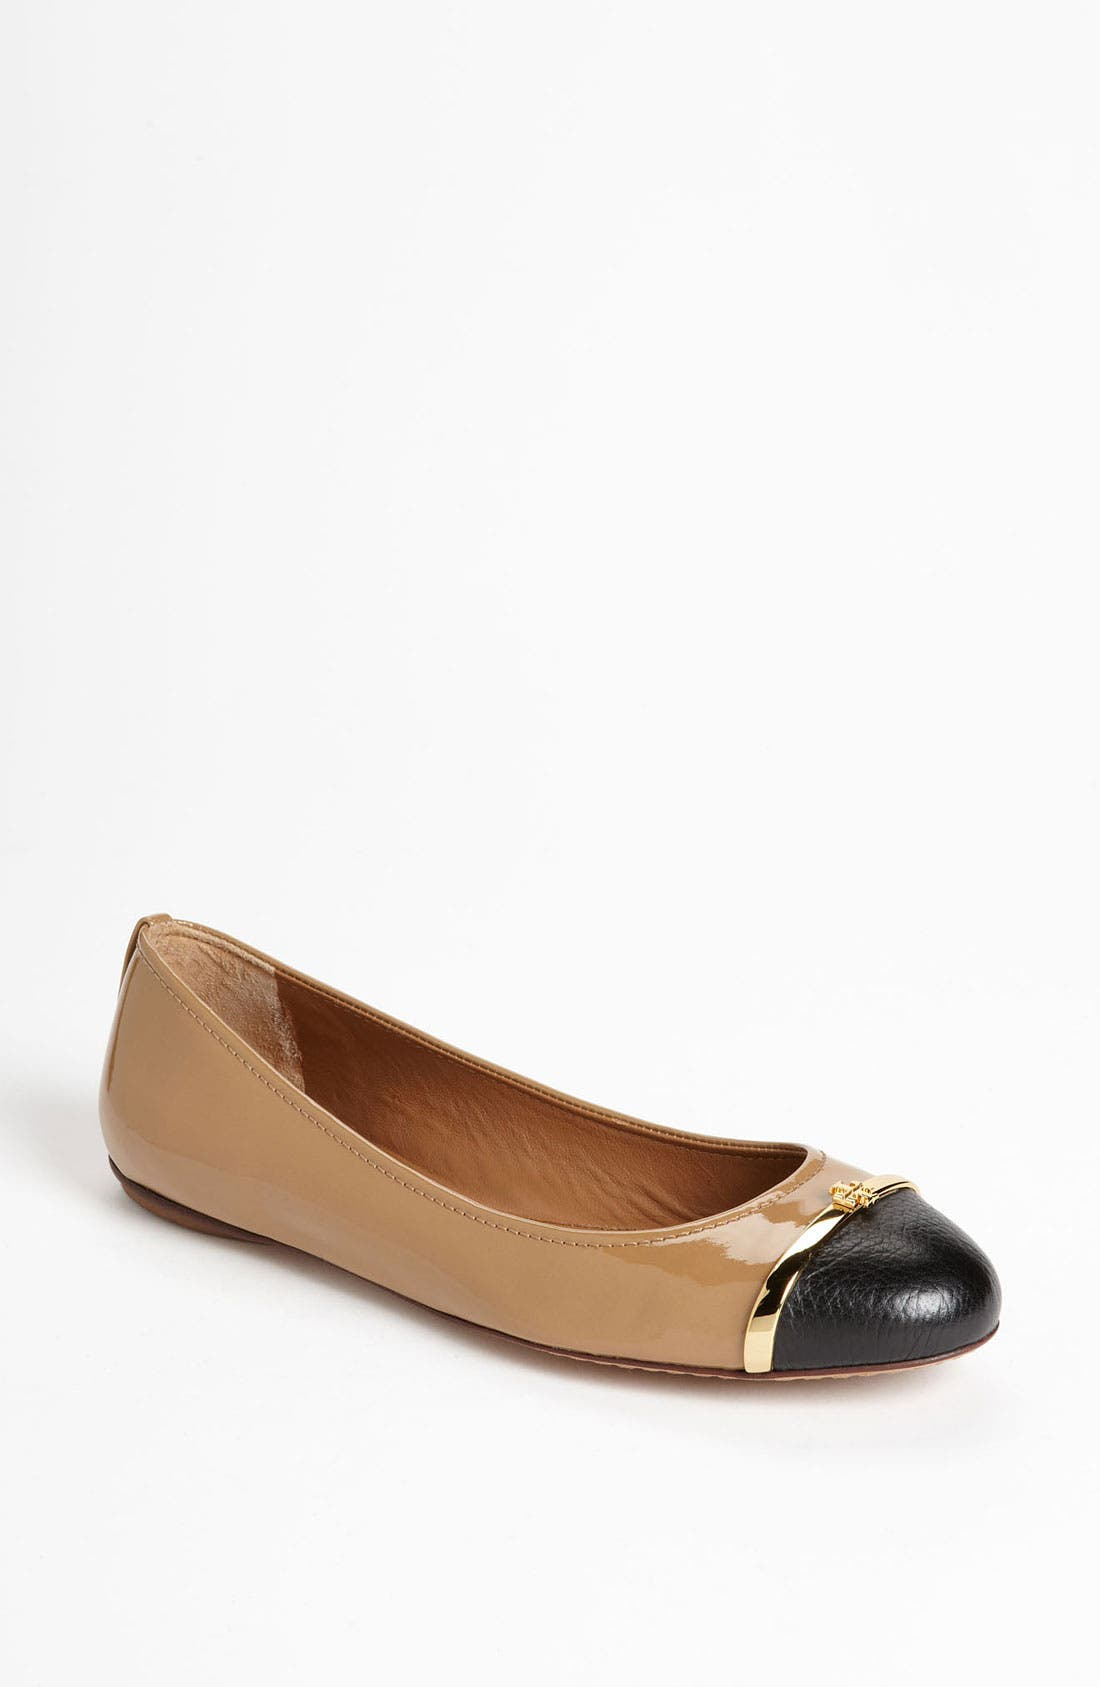 Alternate Image 1 Selected - Tory Burch 'Pacey' Ballet Flat